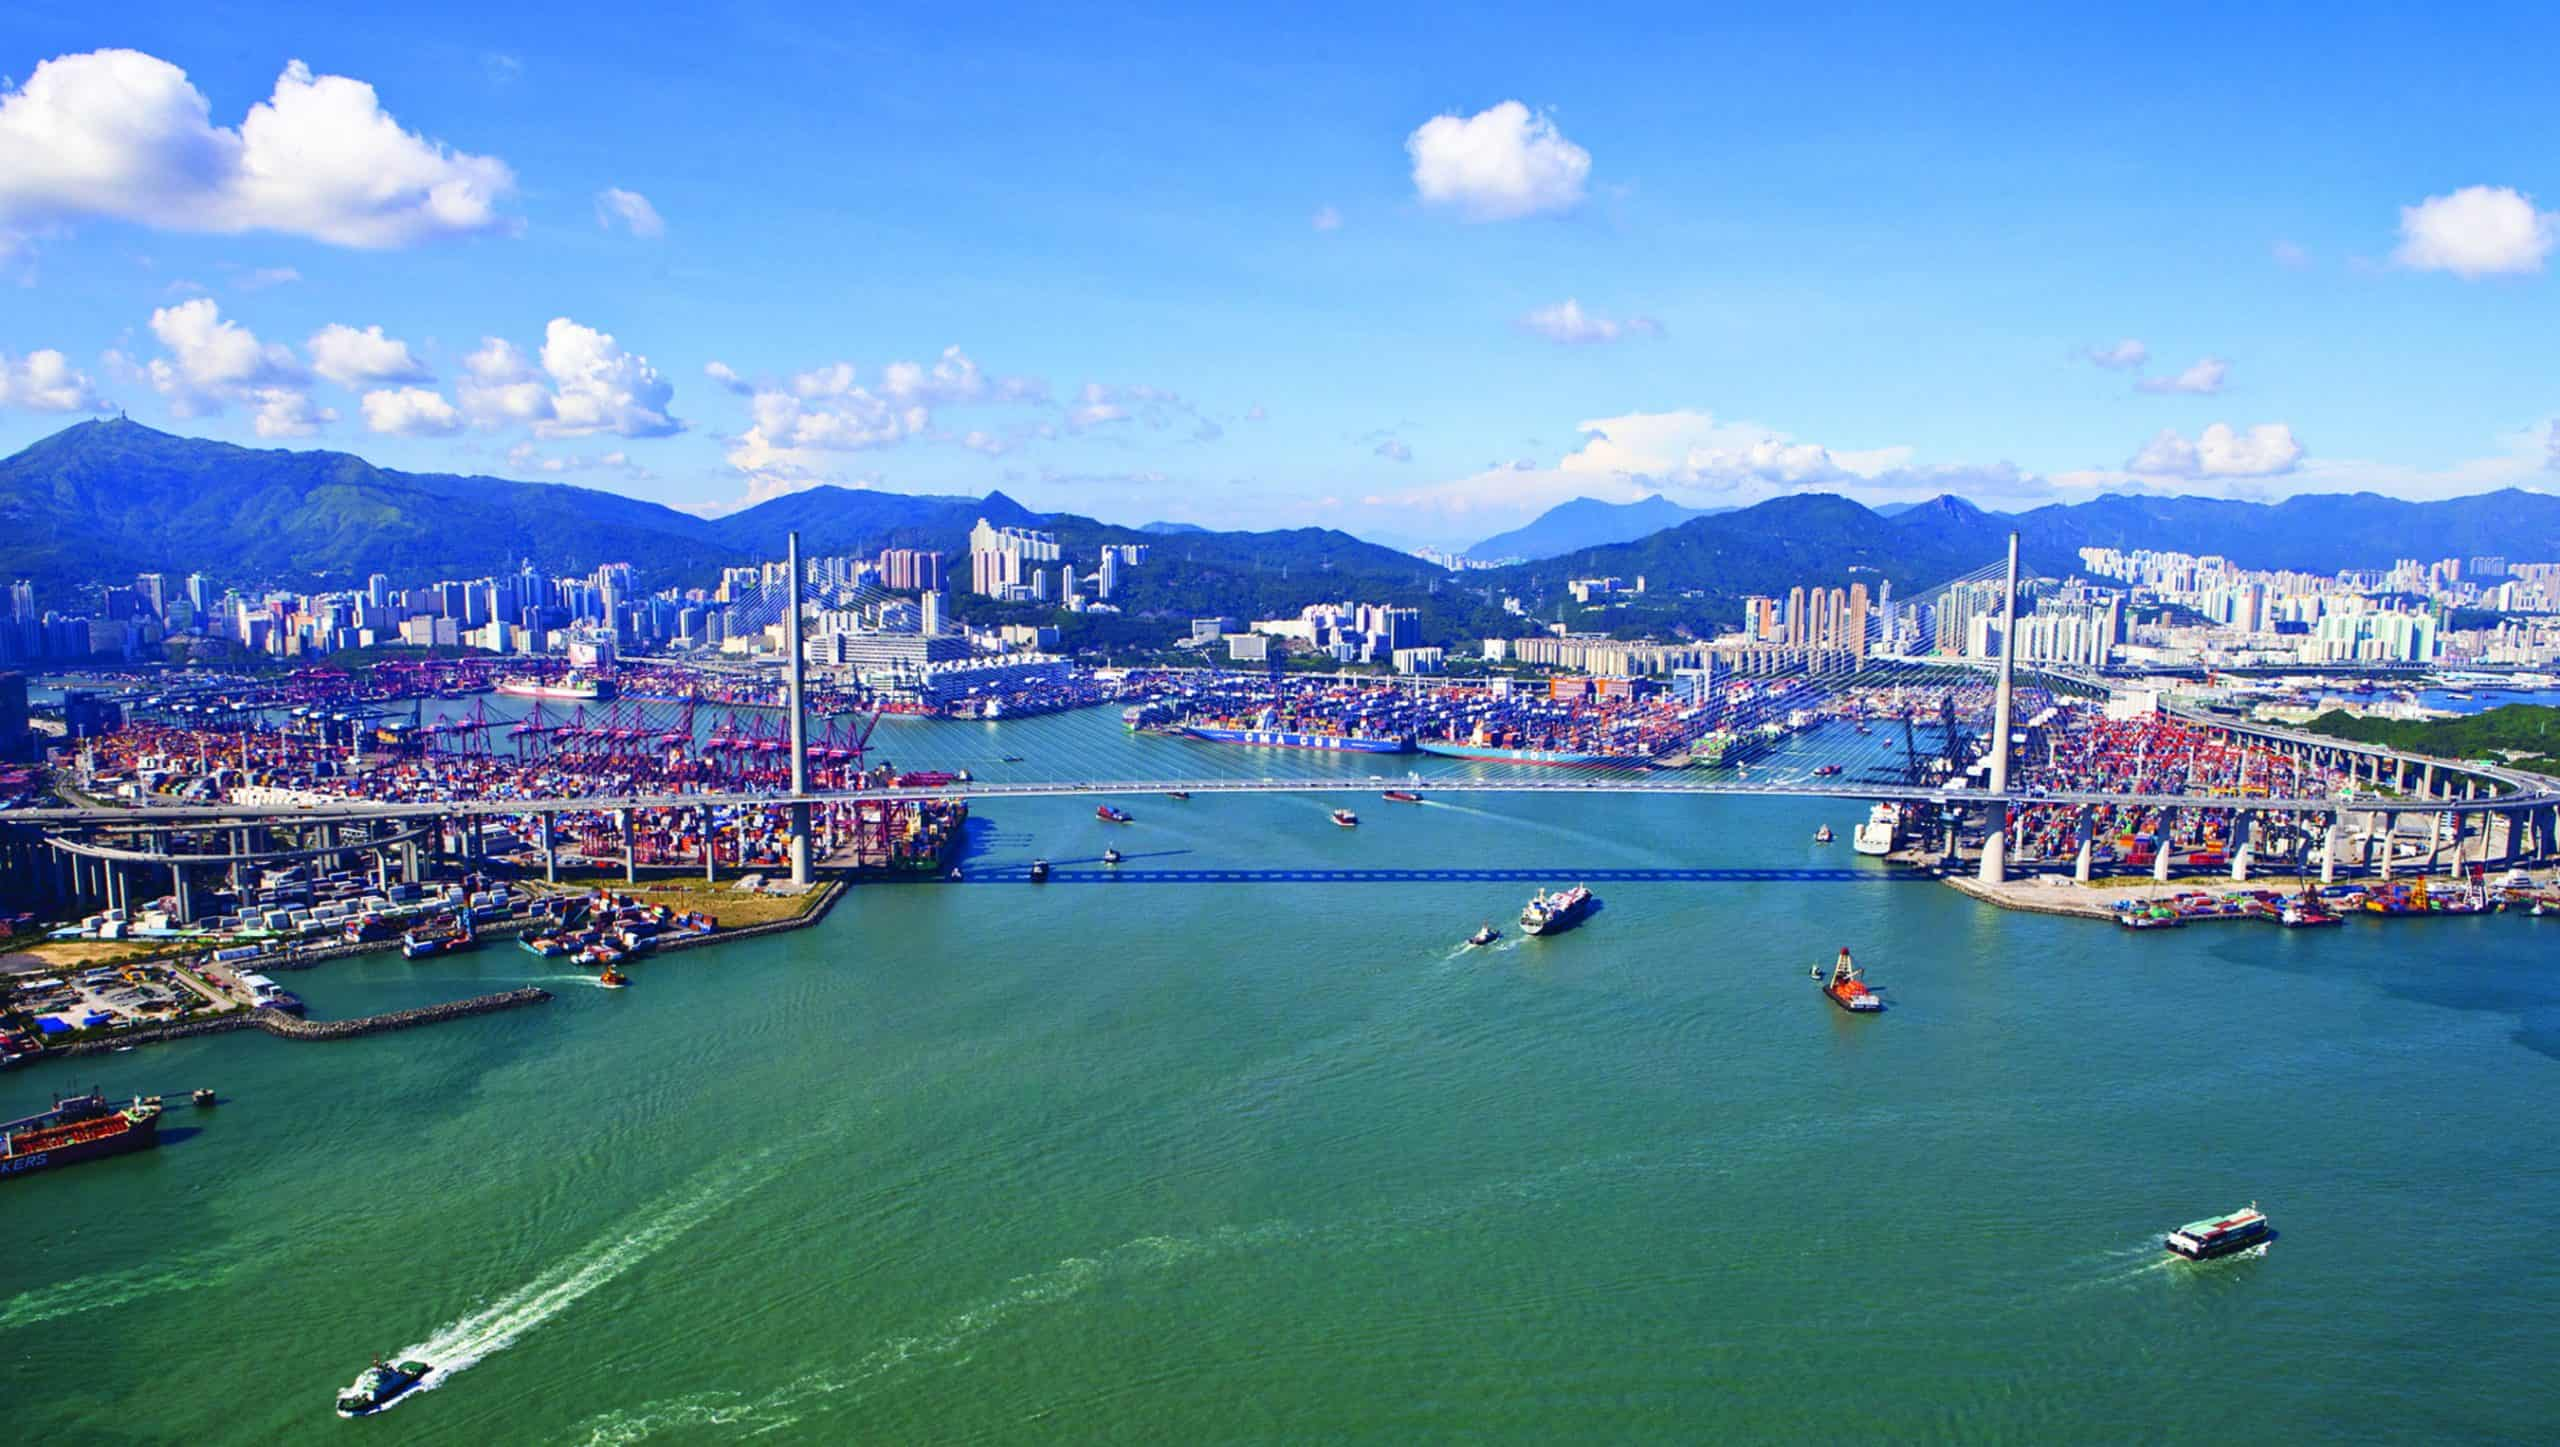 Hong Kong considers building homes above port